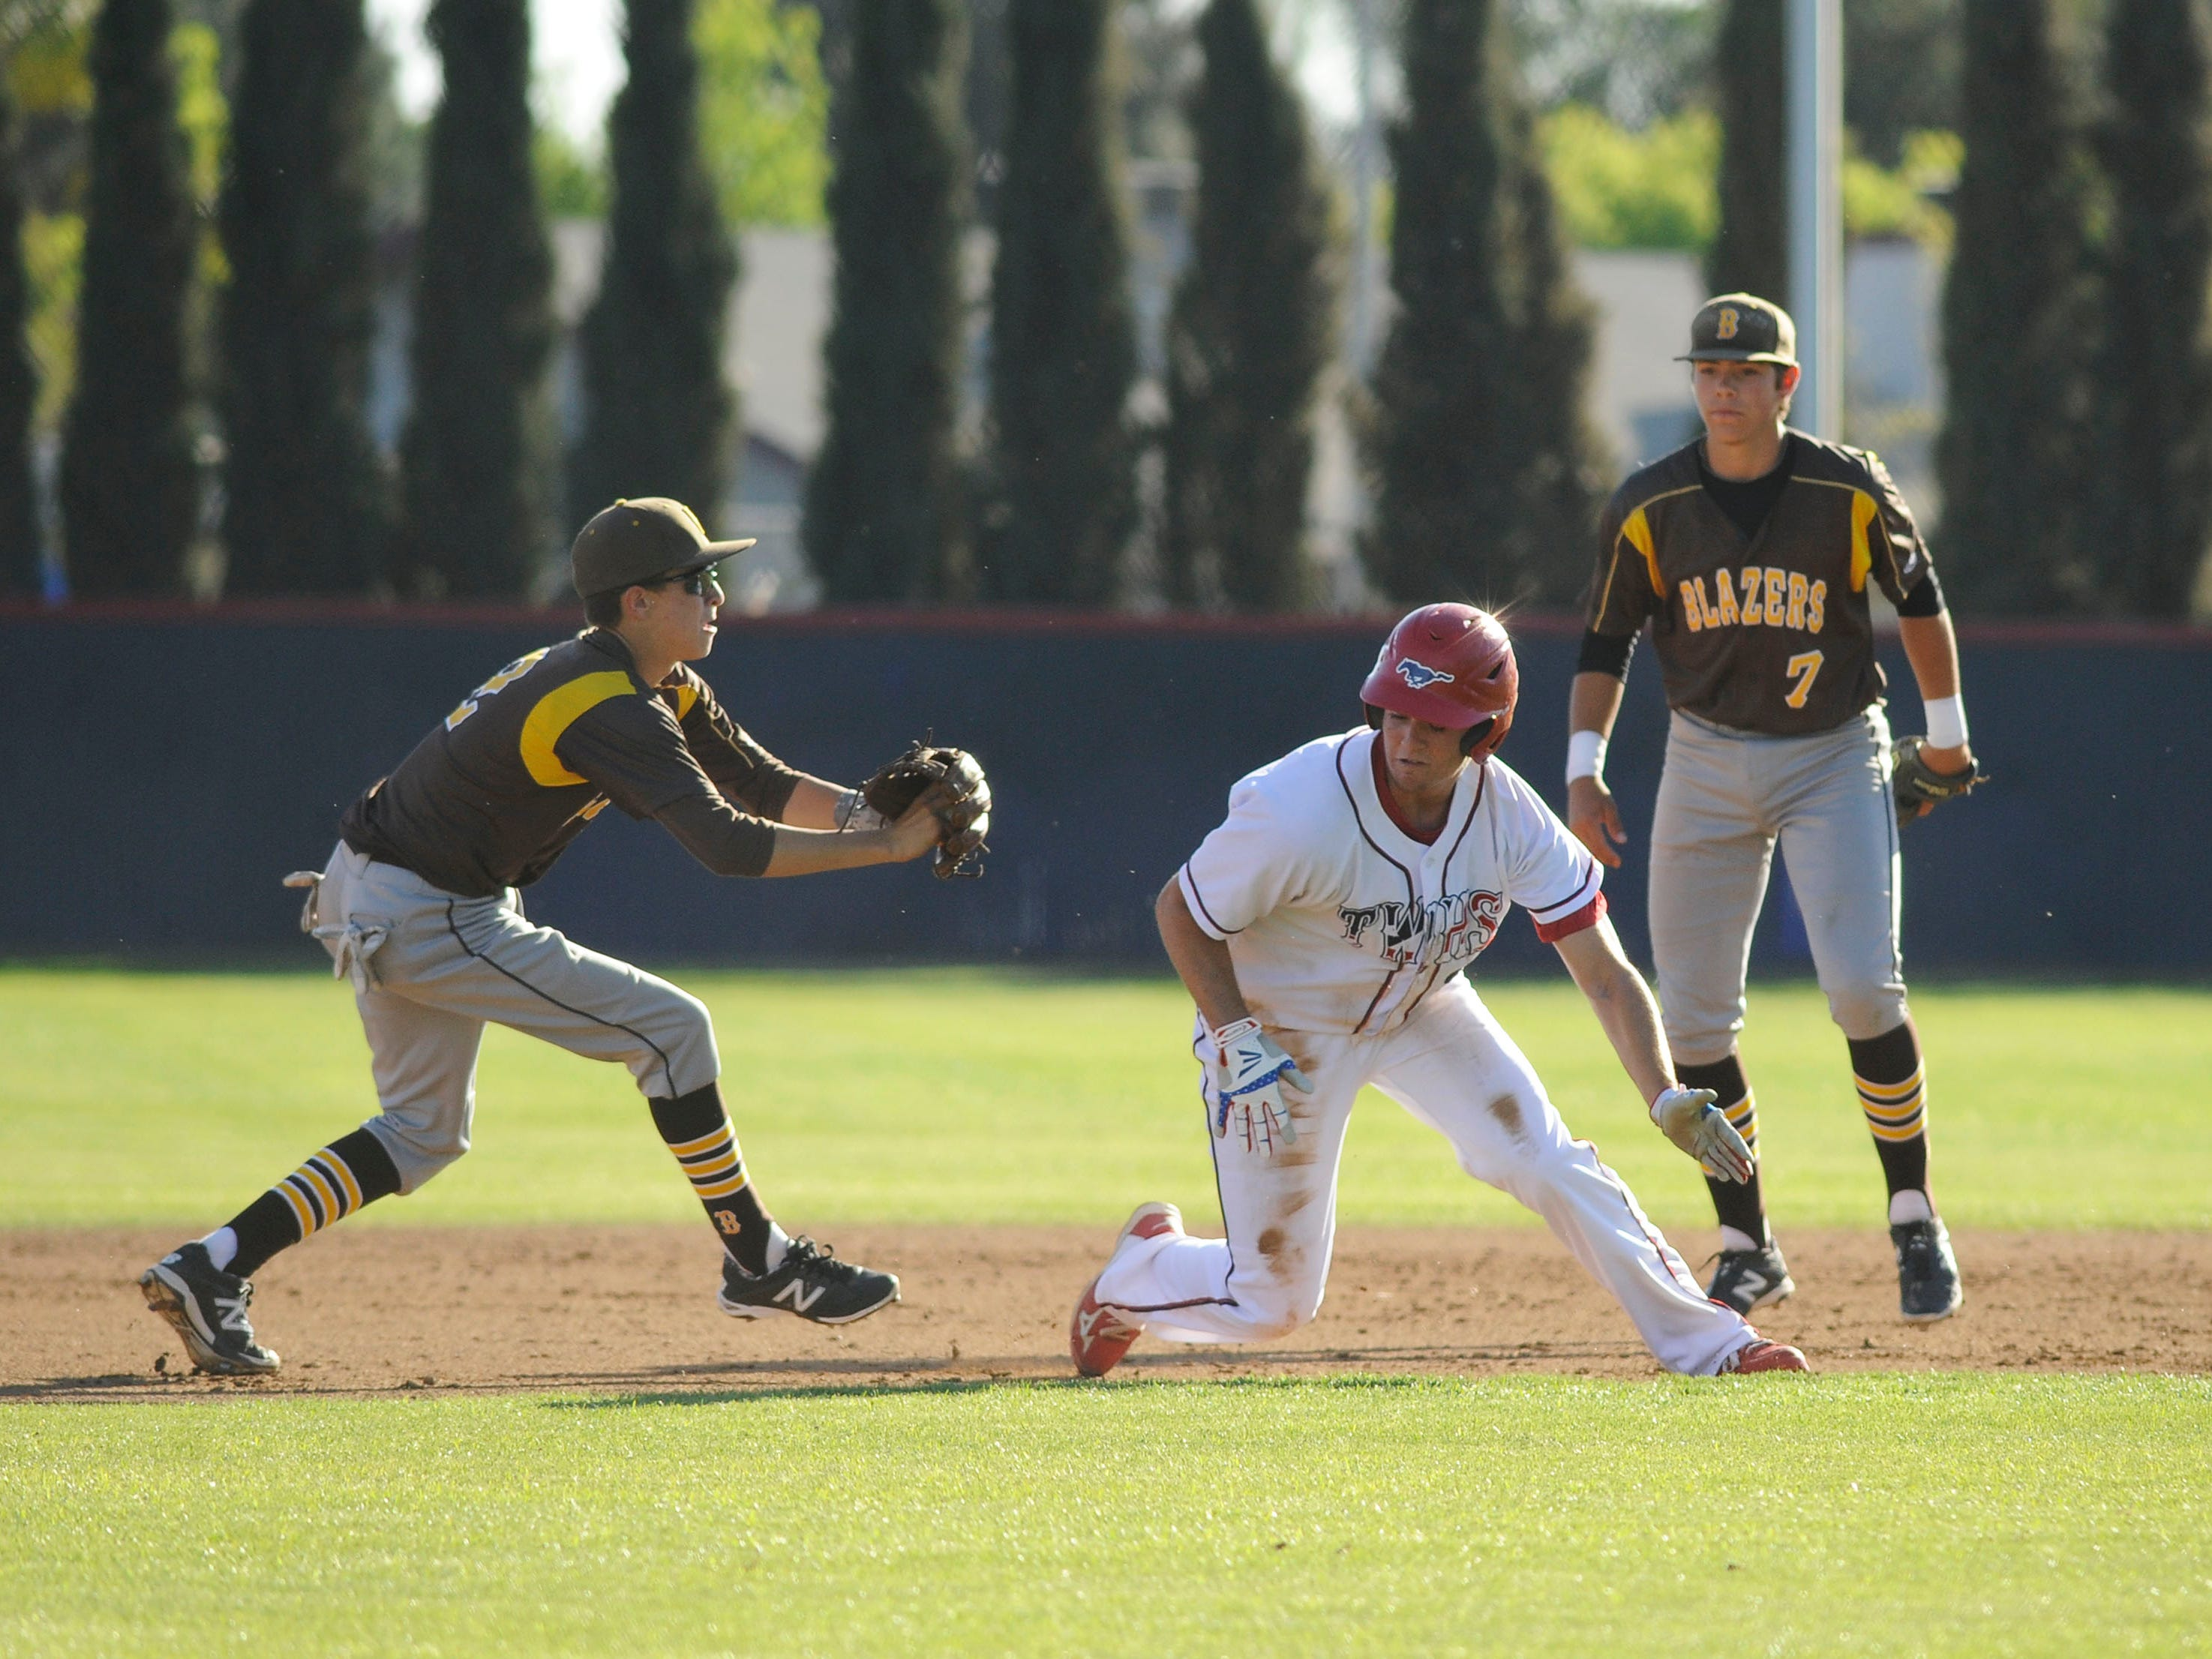 Tulare Western's Blake Costa, center, tries to avoid a tag by Golden West's Zac Legarretta, left, while Golden West's Wyatt Tilley watches during Thursday's game at Tulare Western.